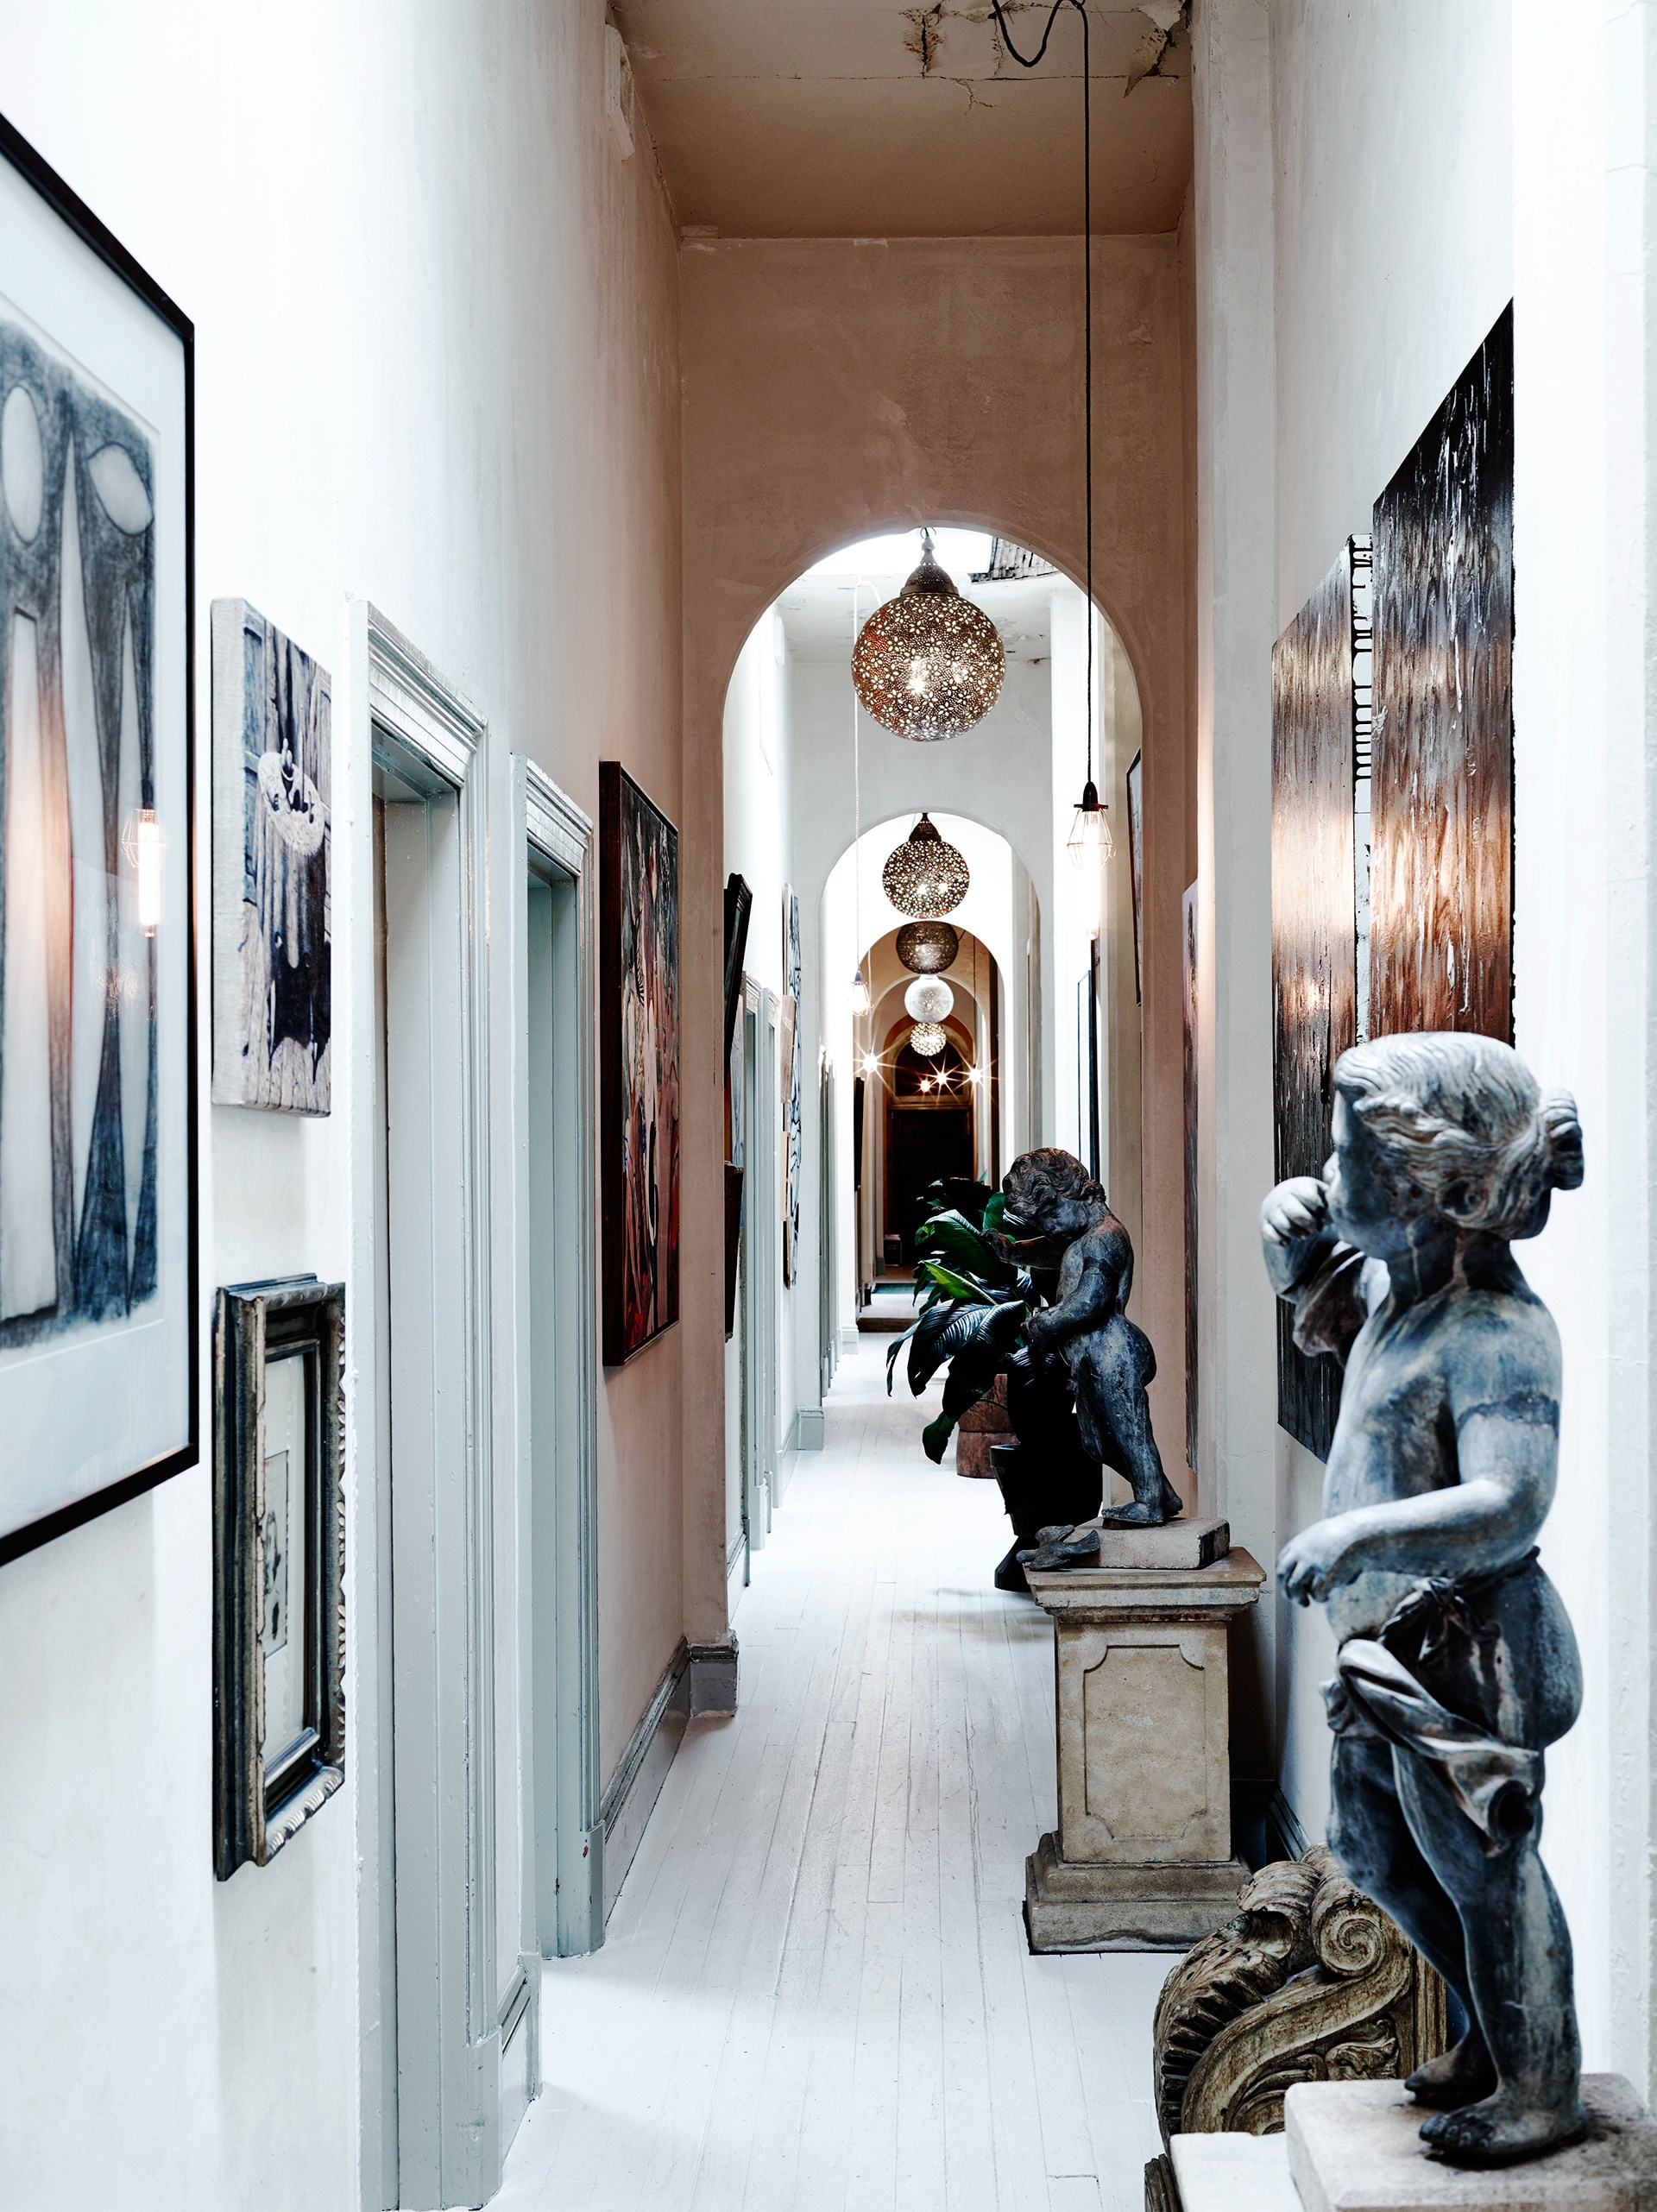 The 63-metre-long hallway hosts French cupids, Indian lights, a McLean Edwards drawing and a Clinton Nain painting.